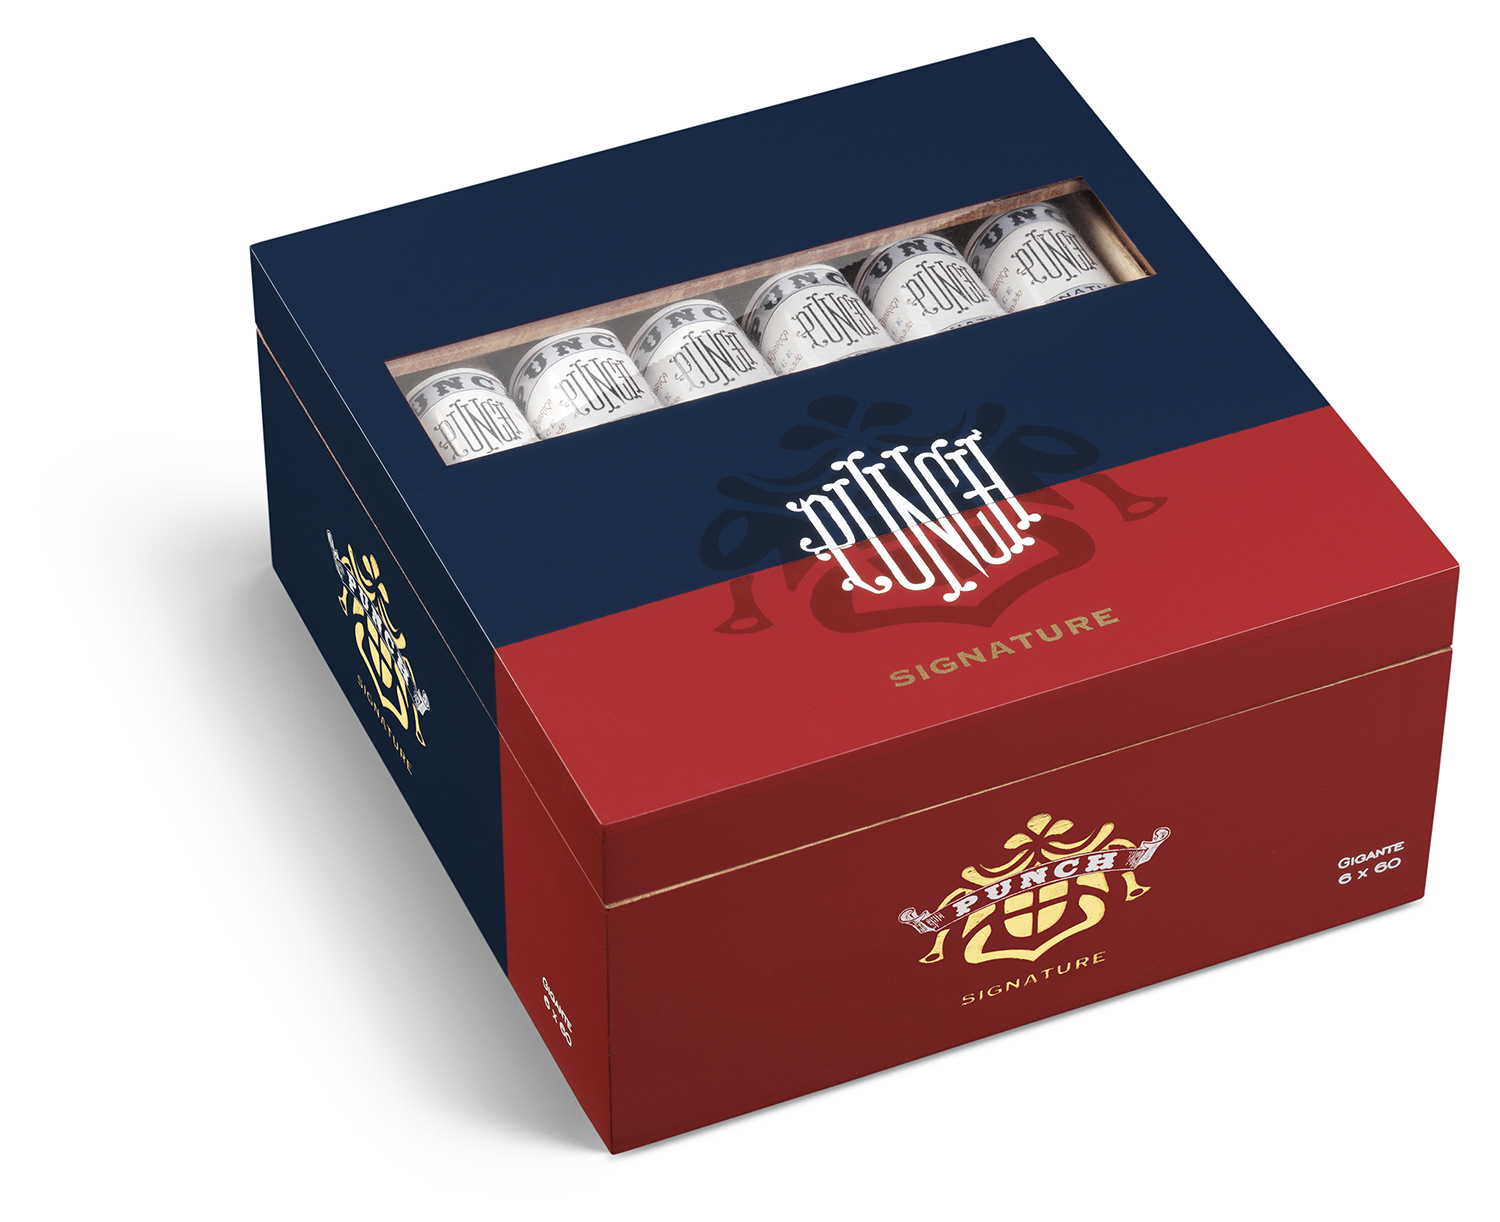 punch signature cigars box closed image